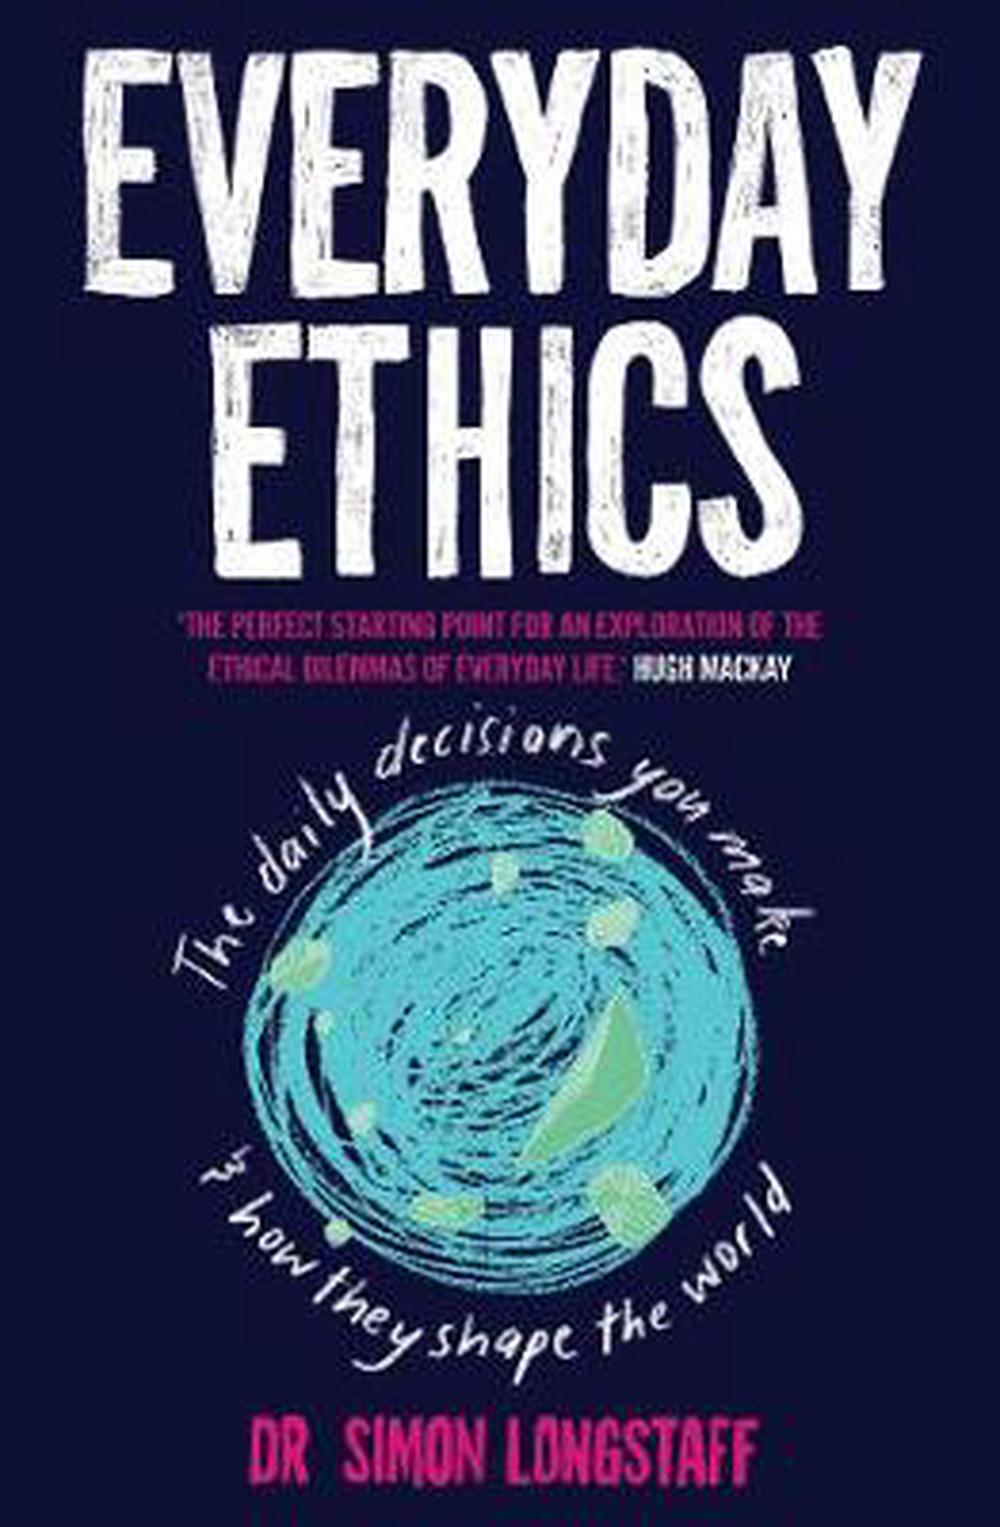 Everyday Ethics by Simon Longstaff Paperback Book Free Shipping!